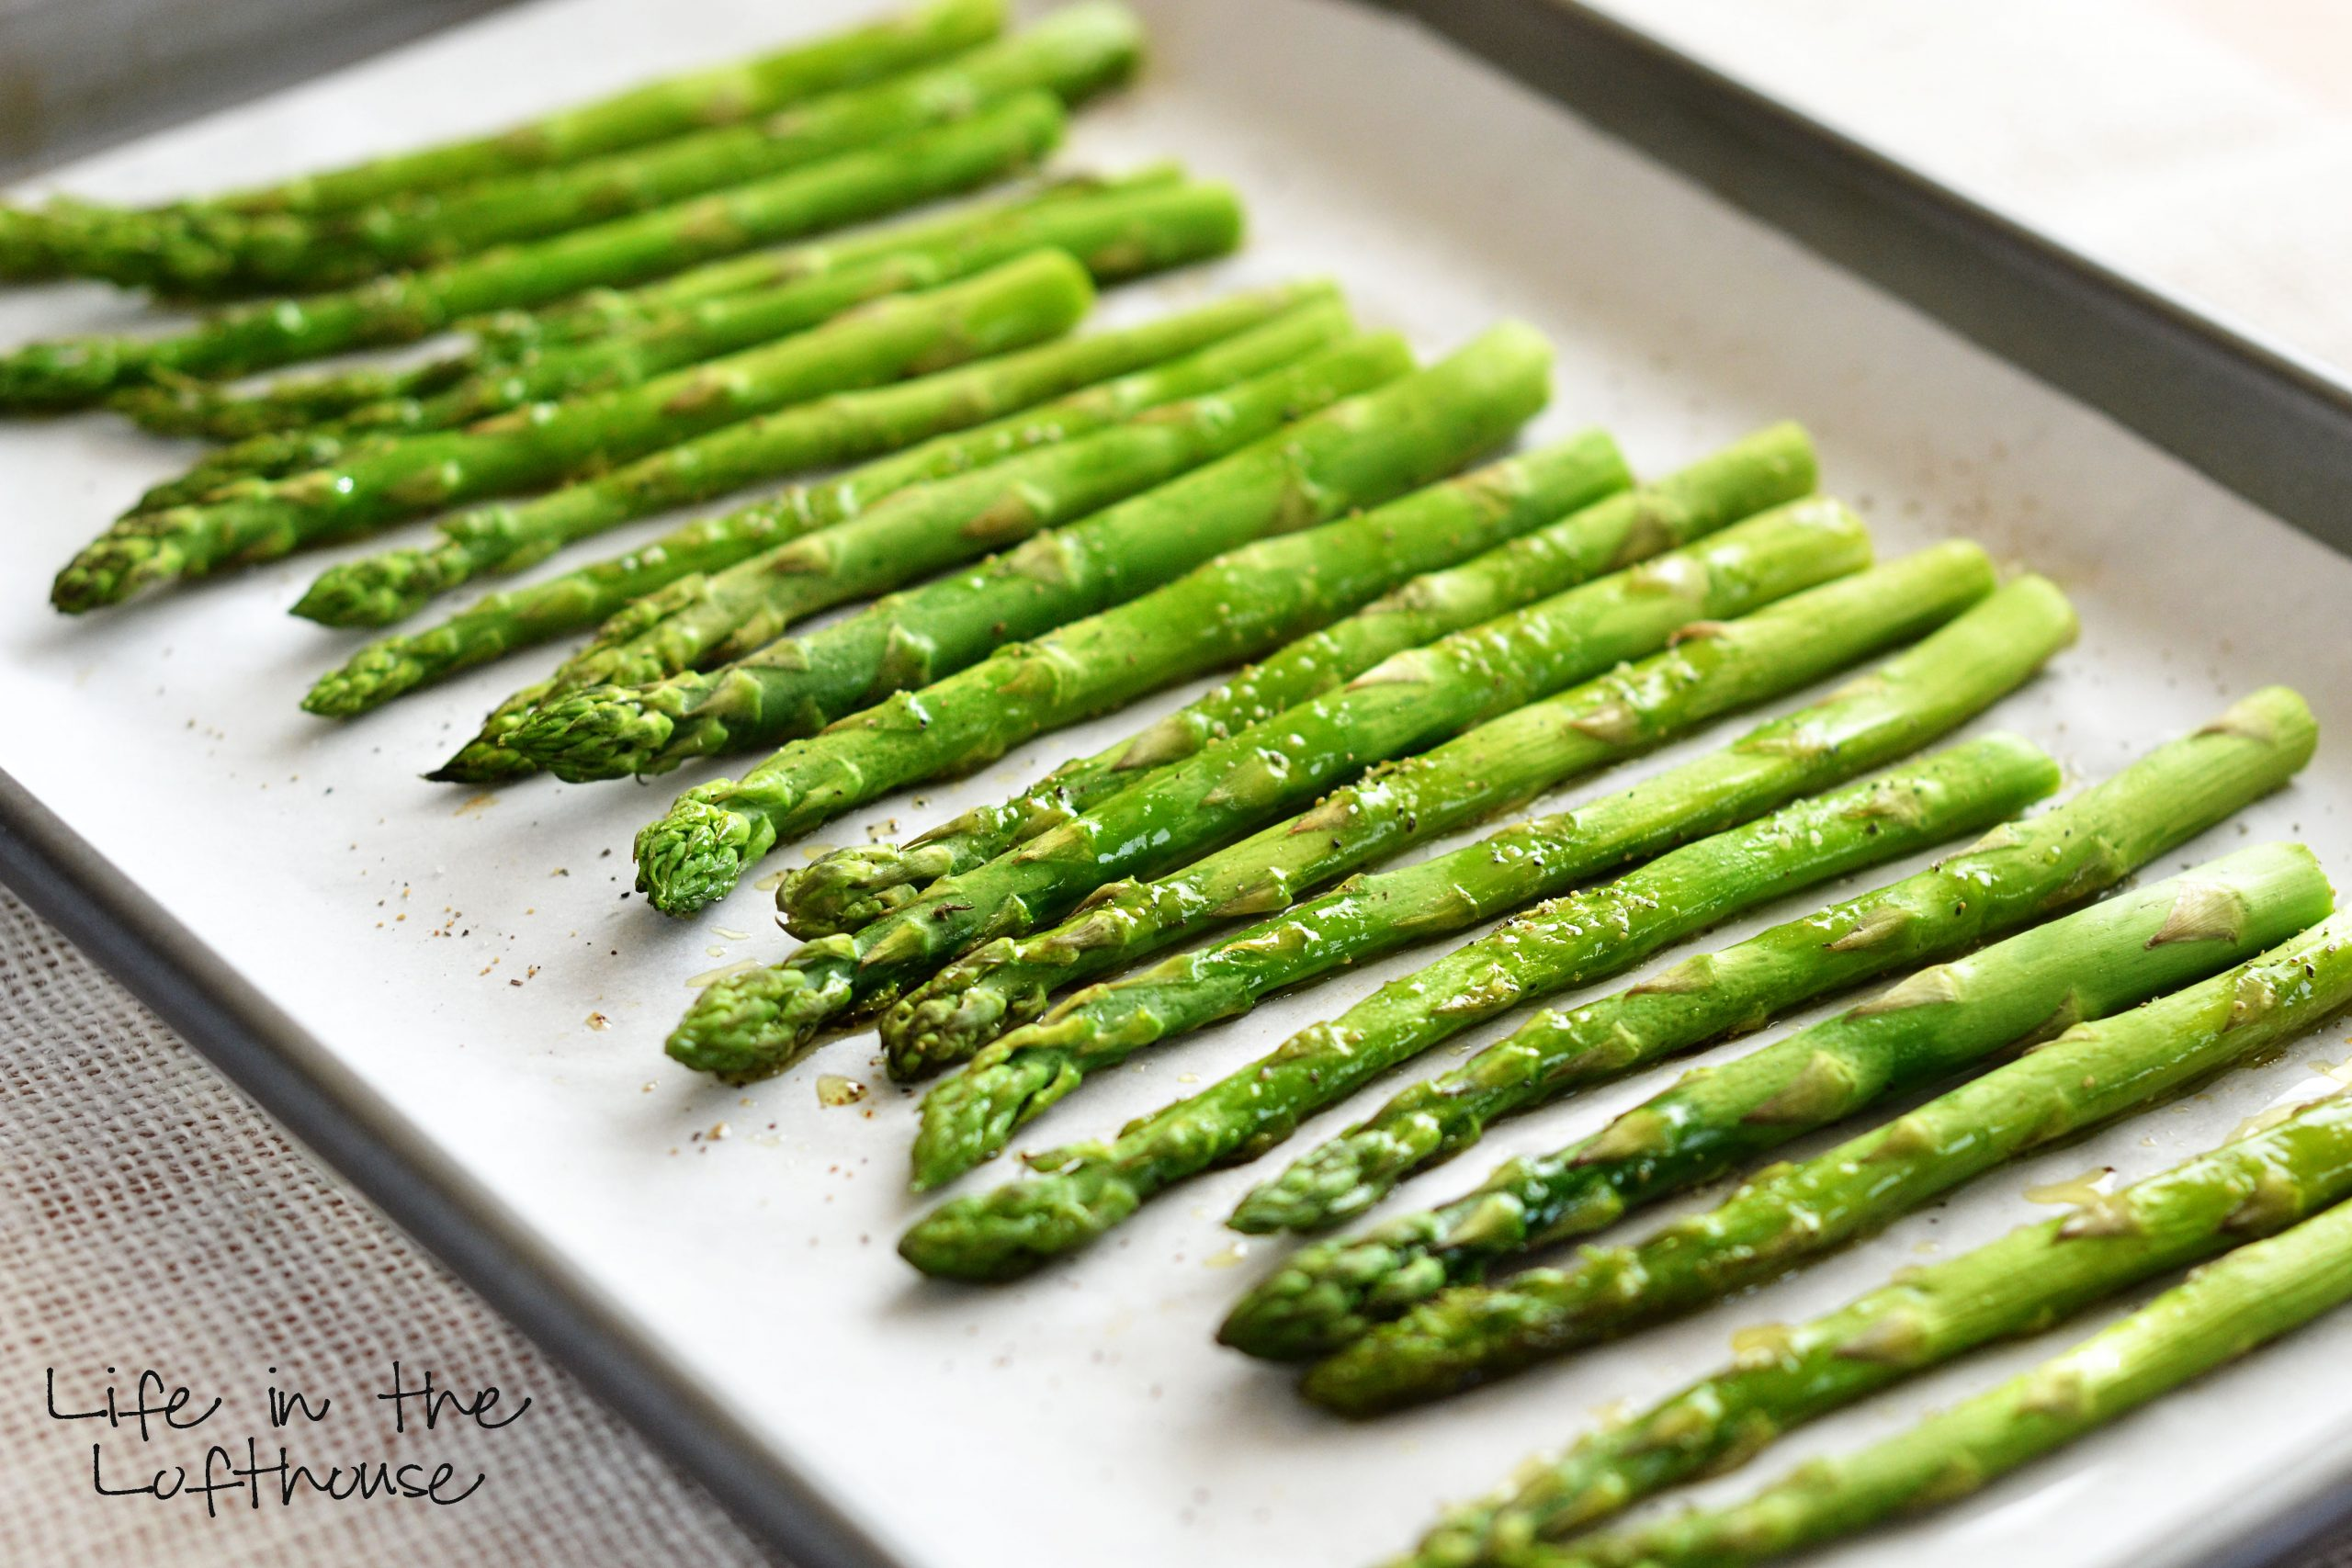 ... an easy and delicious way to cook Asparagus, so it's worth the post